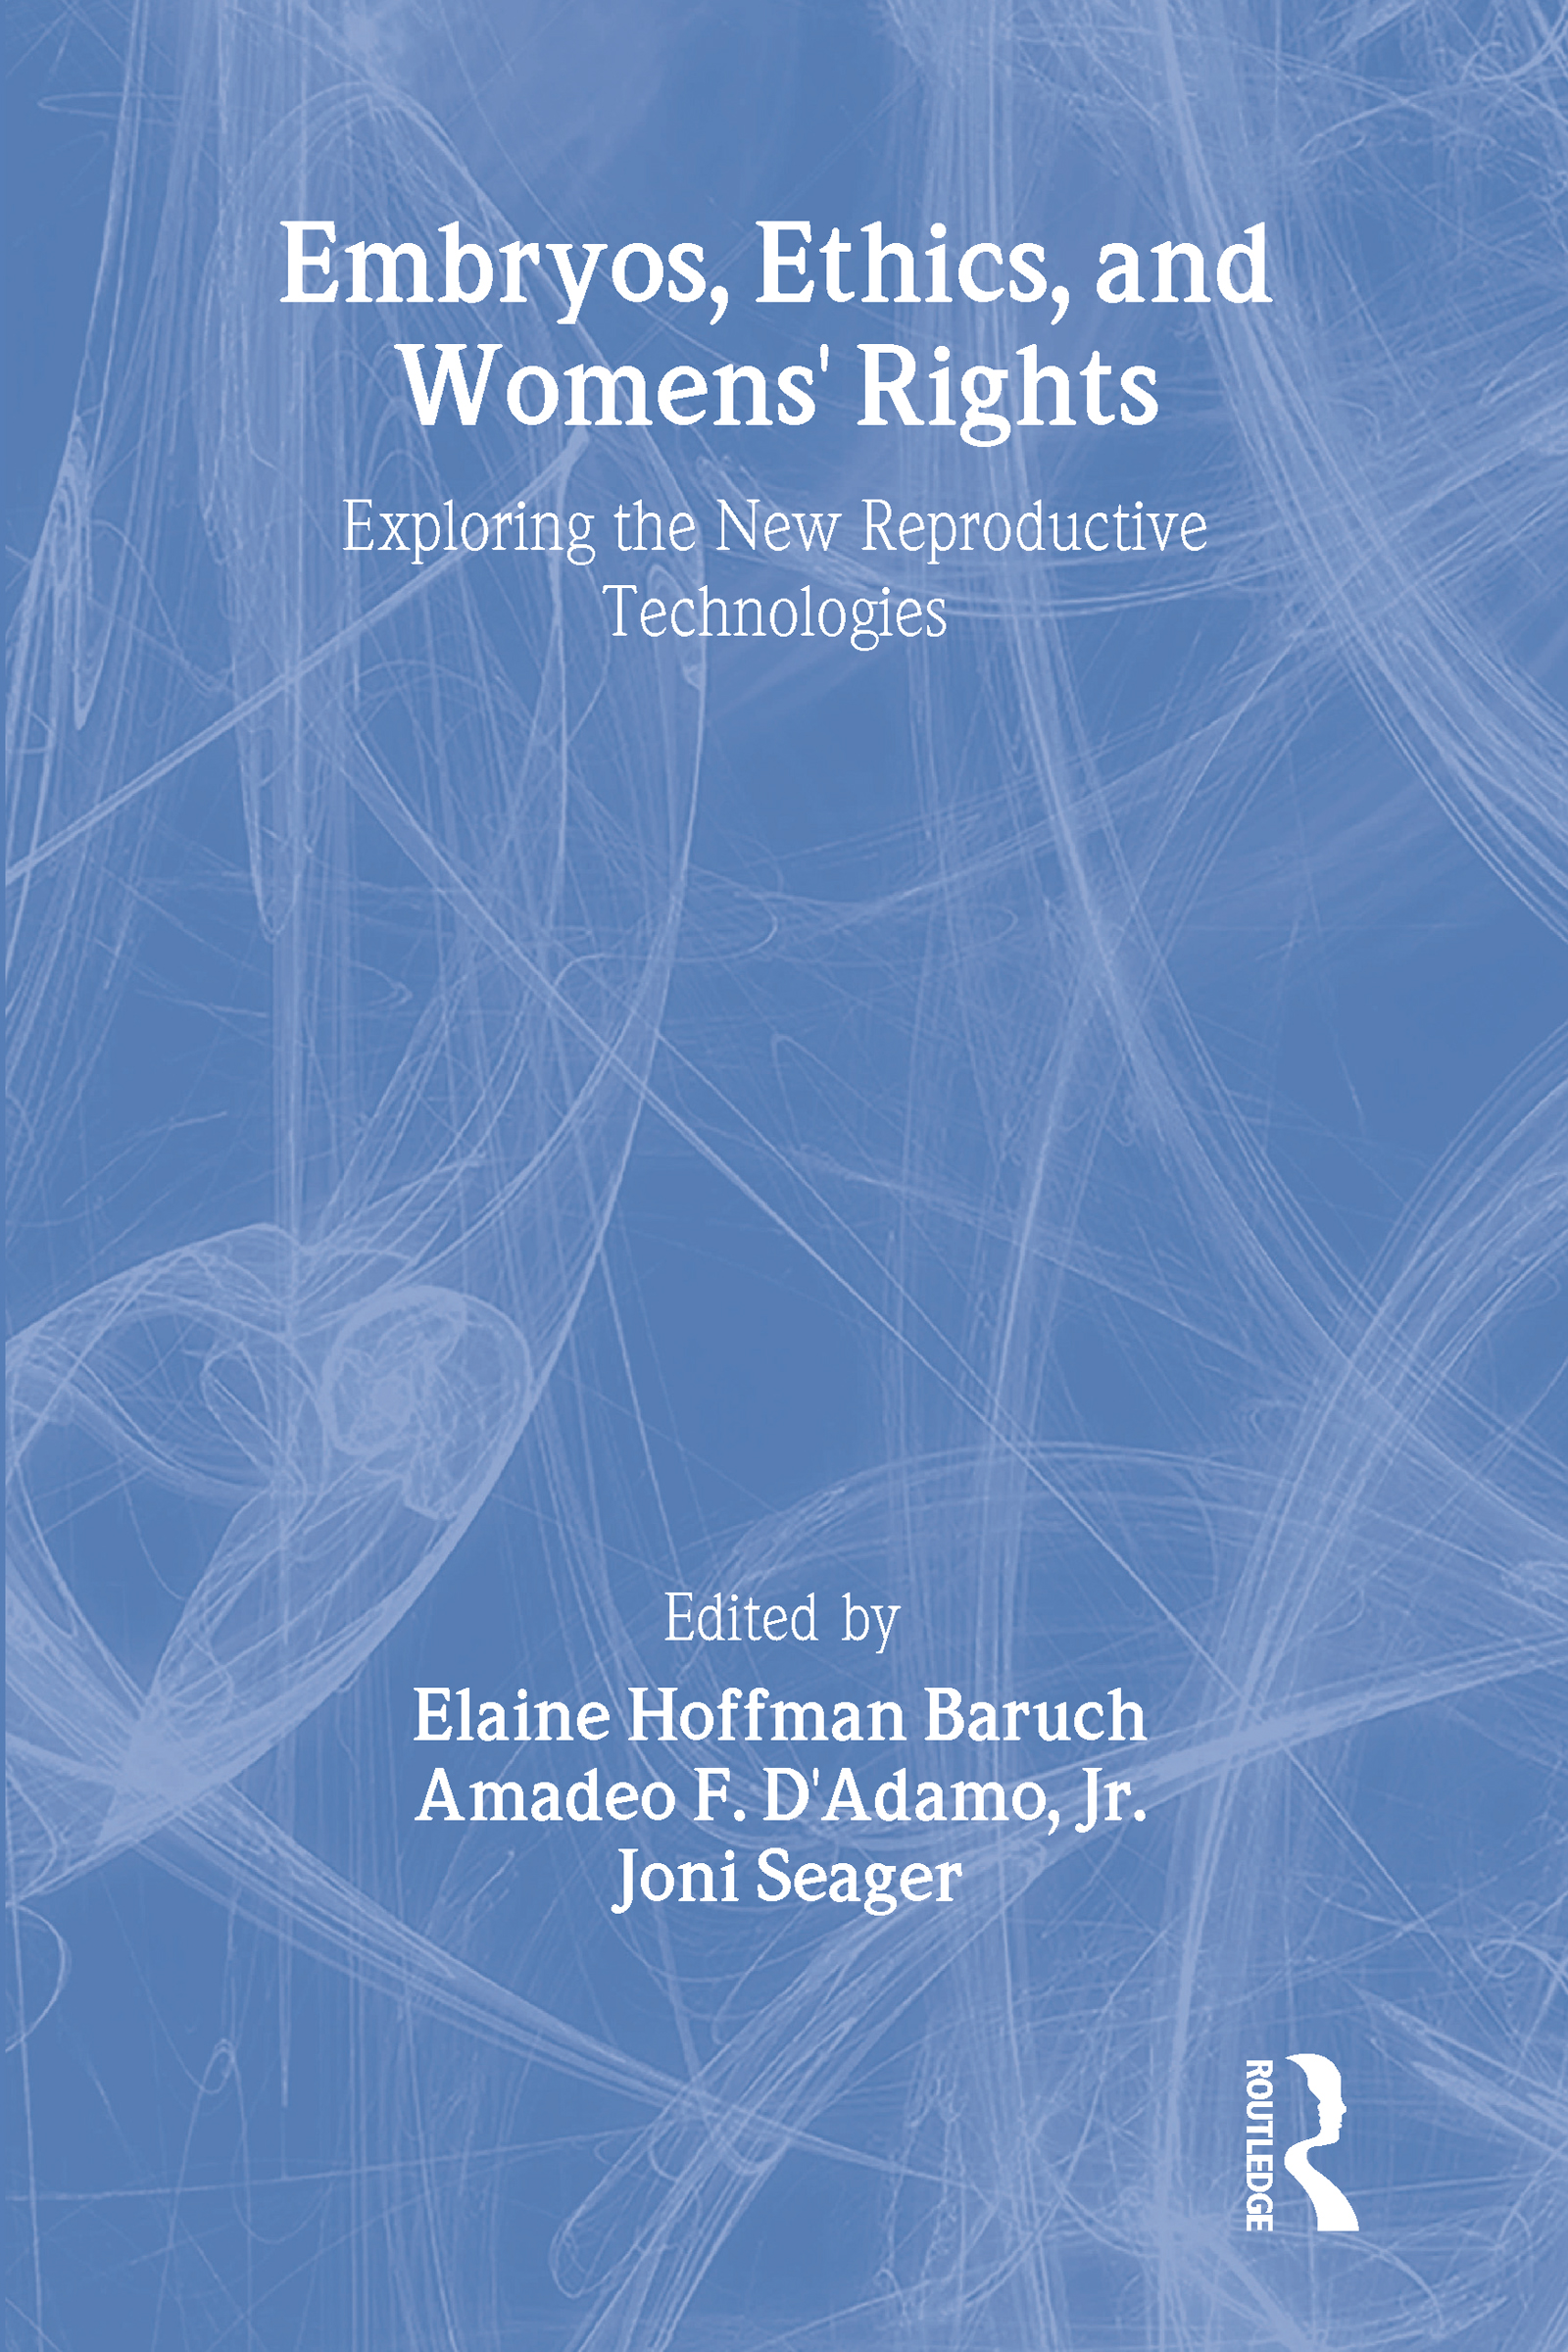 Embryos, Ethics, and Women's Rights: Exploring the New Reproductive Technologies (Paperback) book cover